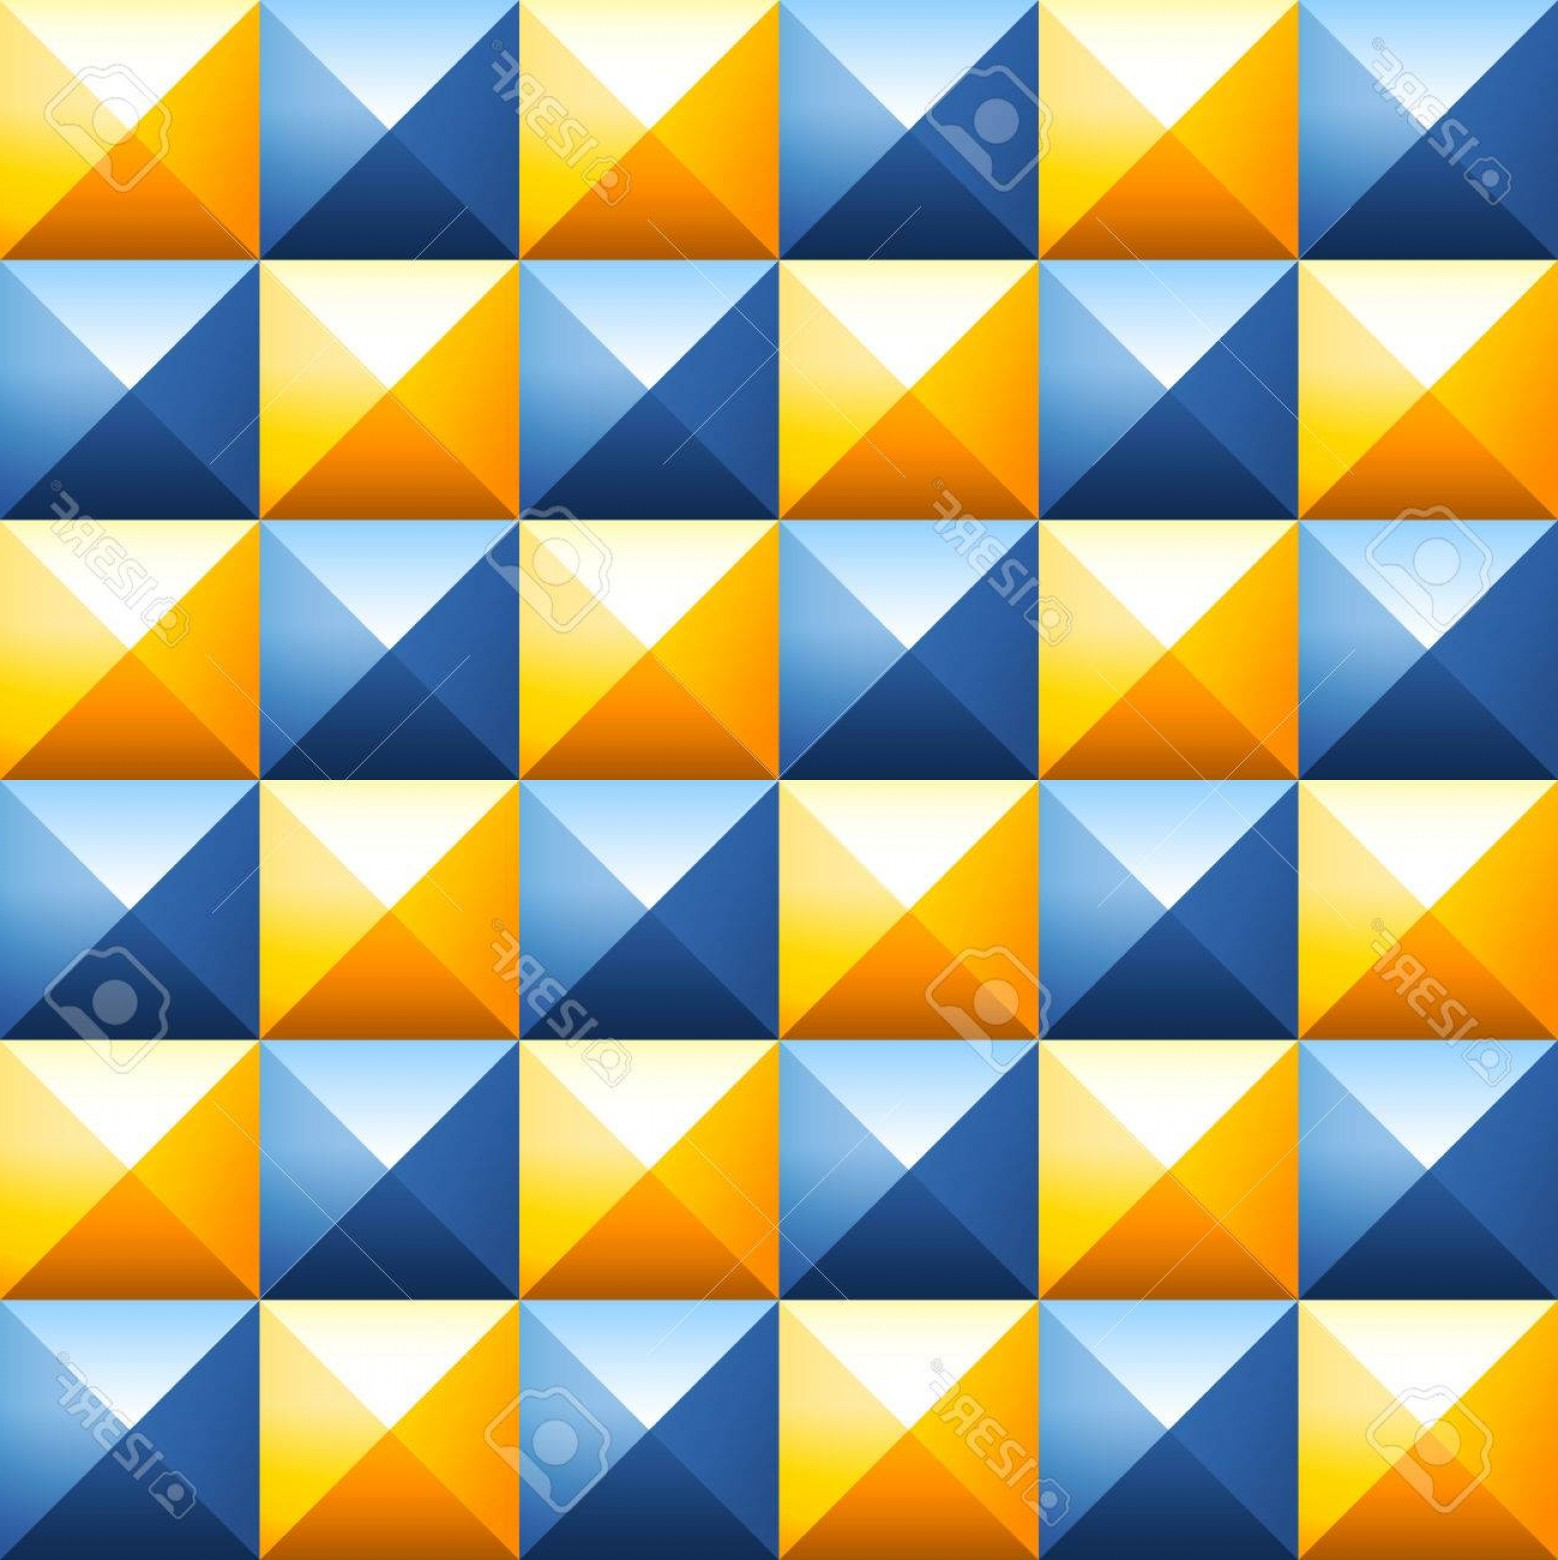 Pyramid Stud Vector: Photostock Vector Abstract Background Of Colorful Plastic Pyramids Studded Cubes Seamless Pattern Pointed Background P